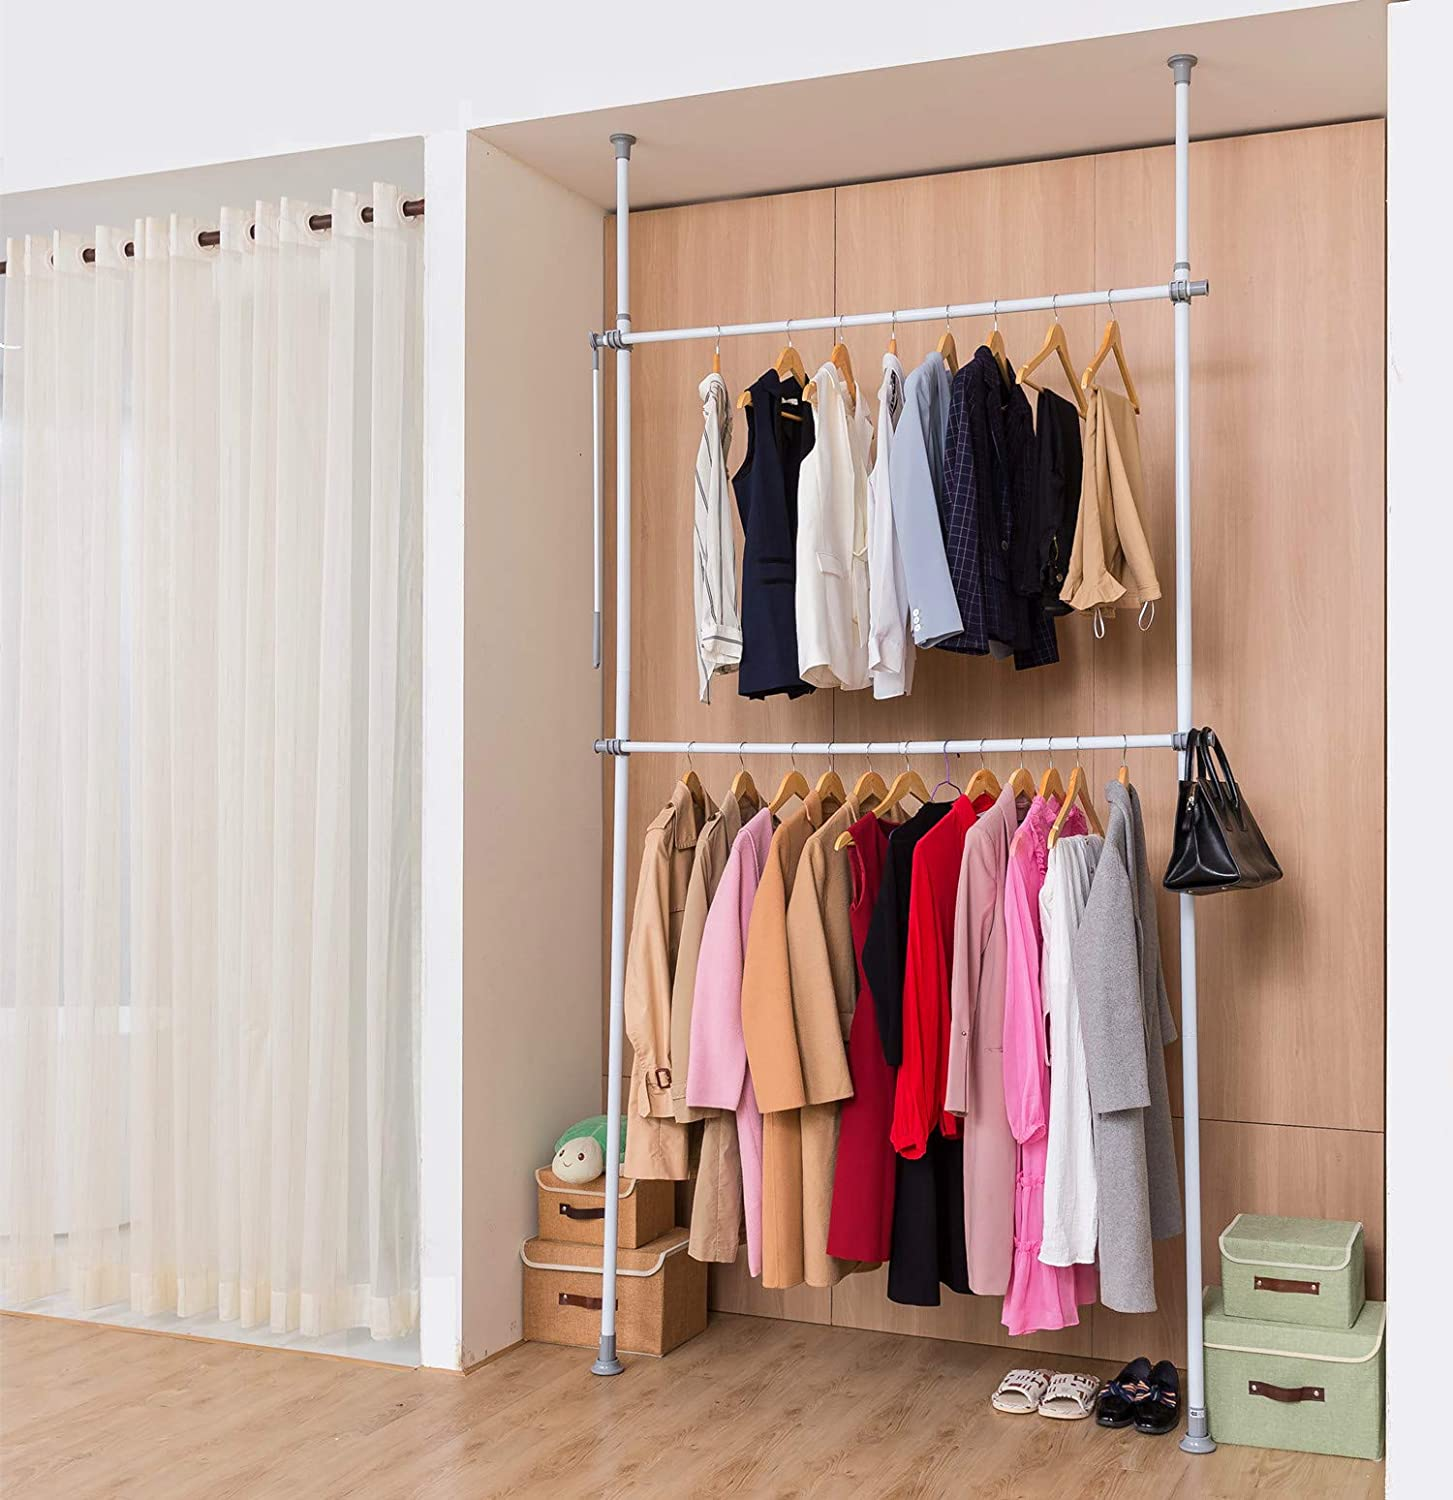 Adjustable Closet Rod Double Rail,Freestanding Clothing Garment Rack Organizer System,